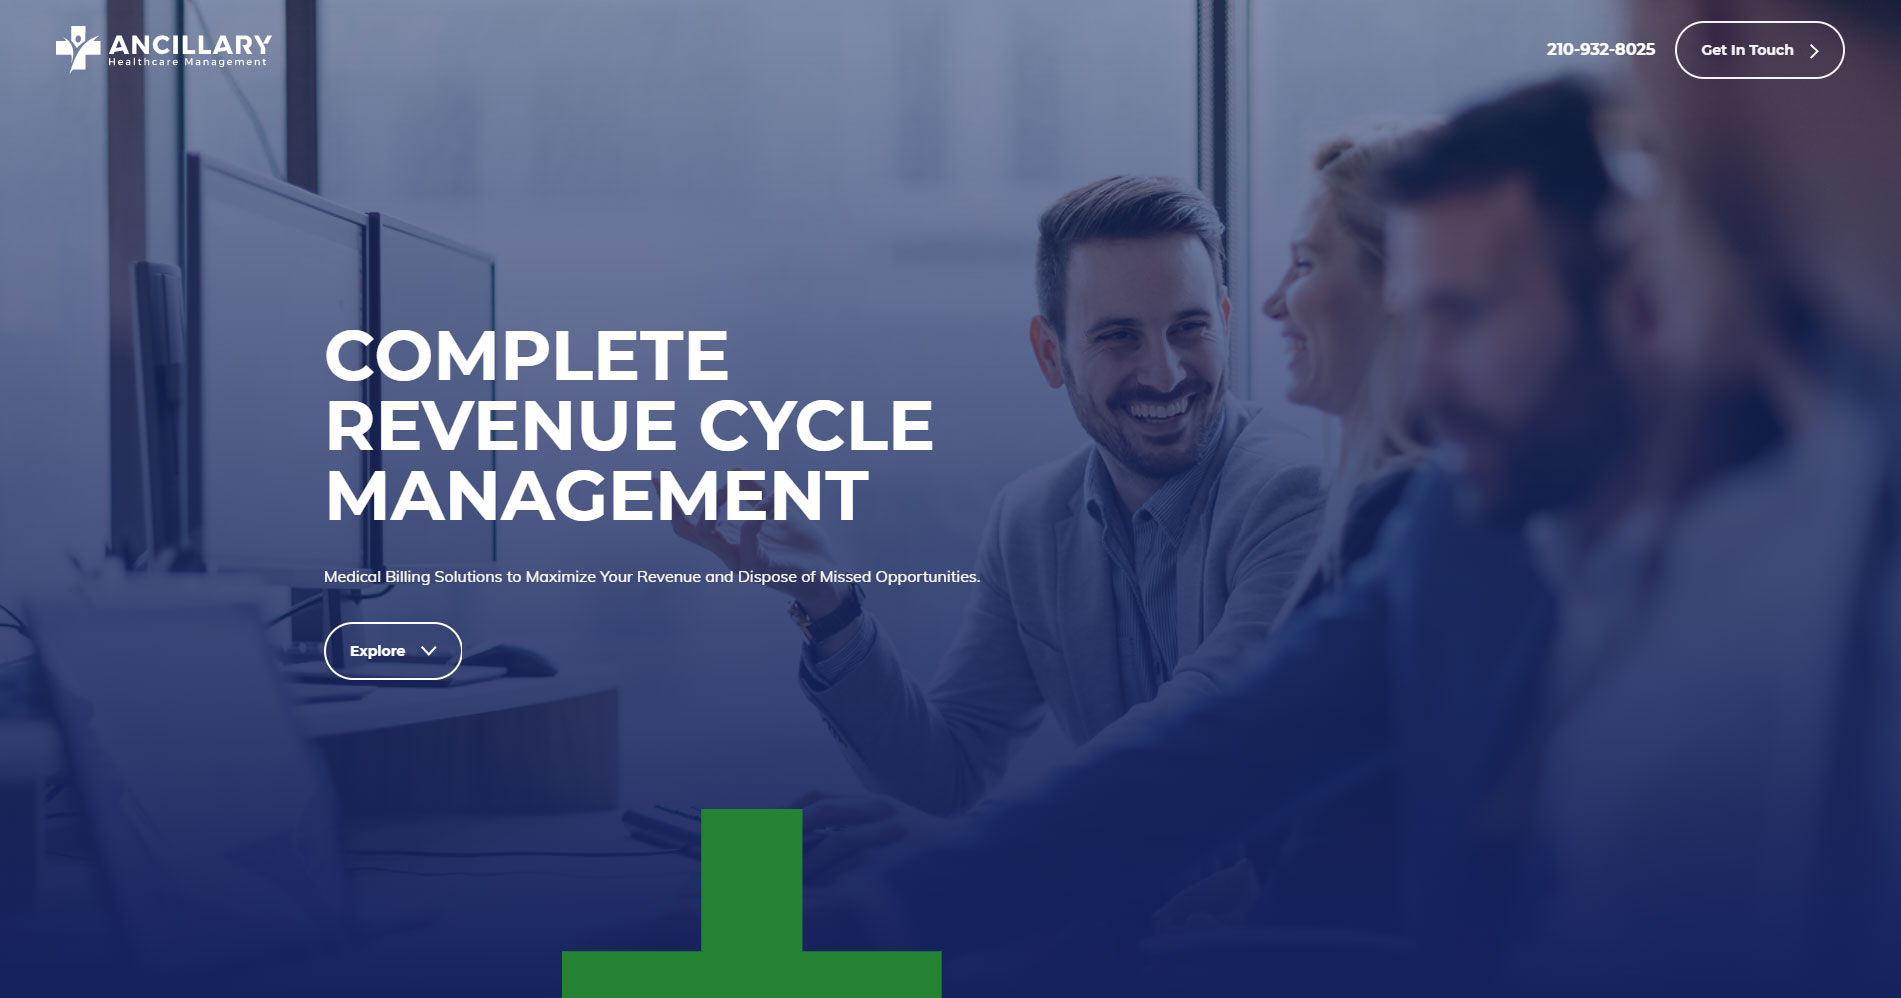 Ancillary Healthcare Management